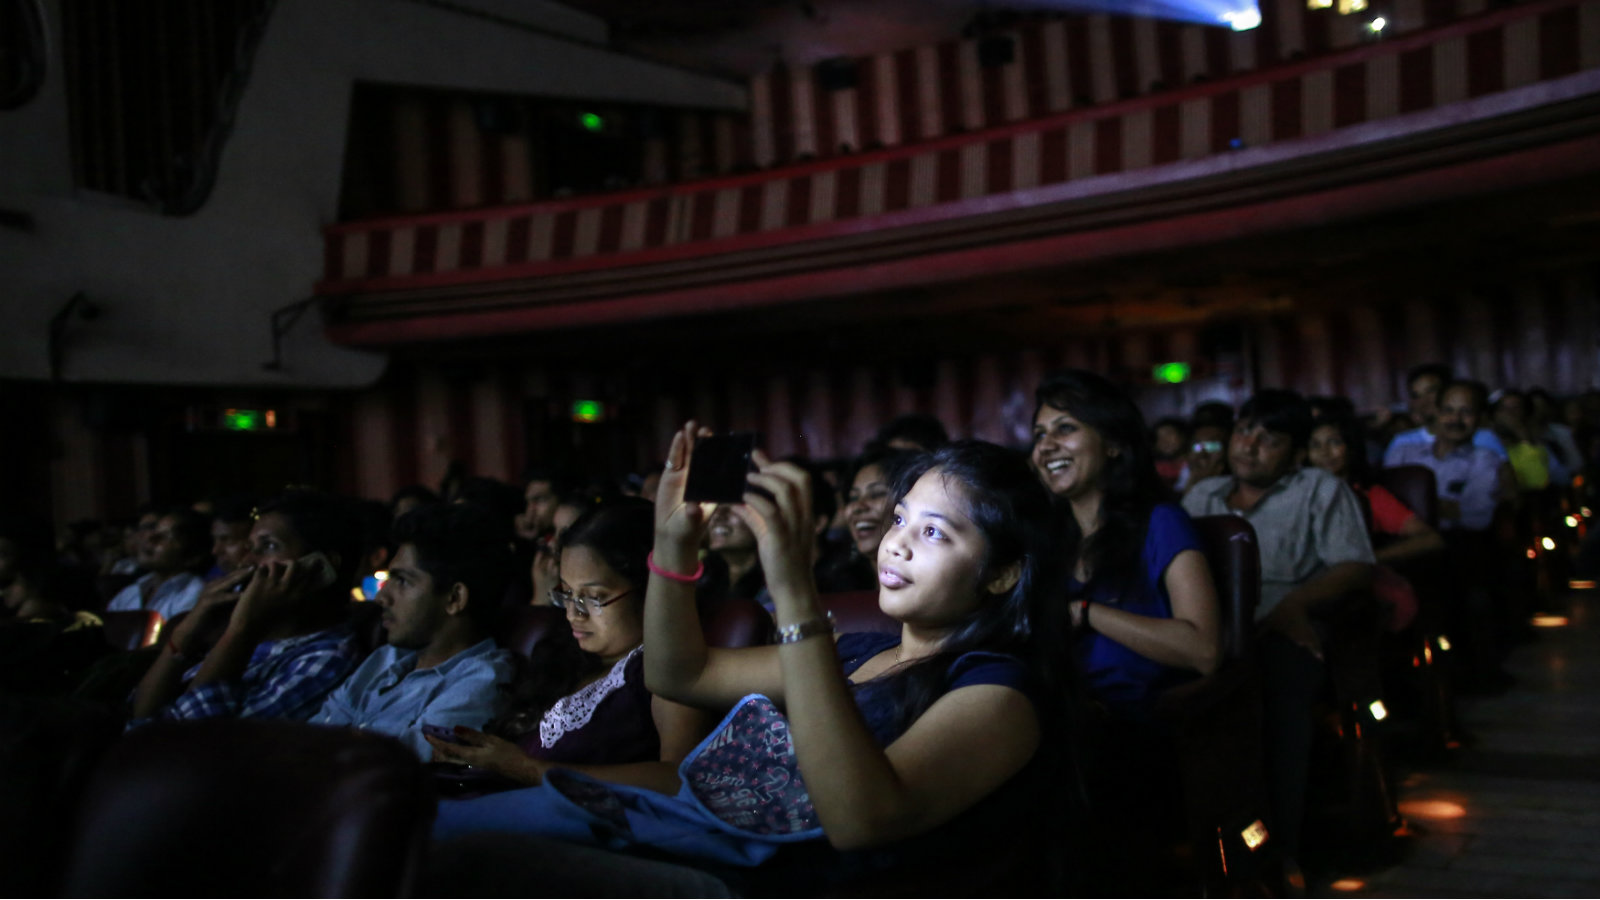 """A cinema goer takes a picture as others watch Bollywood movie """"Dilwale Dulhania Le Jayenge"""" (The Big Hearted Will Take the Bride), starring actor Shah Rukh Khan, inside Maratha Mandir theatre in Mumbai December 12, 2014. The movie, released in October 1995, has set a record of completing 1000 weeks of continuous screening at a cinema, a feat unmatched by any other Bollywood movies. According to Manoj Desai, owner of the theatre, the movie, which is still being screened, enjoys at least 50 to 60 percent occupancy on weekdays and full house on weekends at his theatre. The movie is screened only in the morning and the ticket price ranges from 15 to 20 Indian rupees ($0.24-$0.32)."""